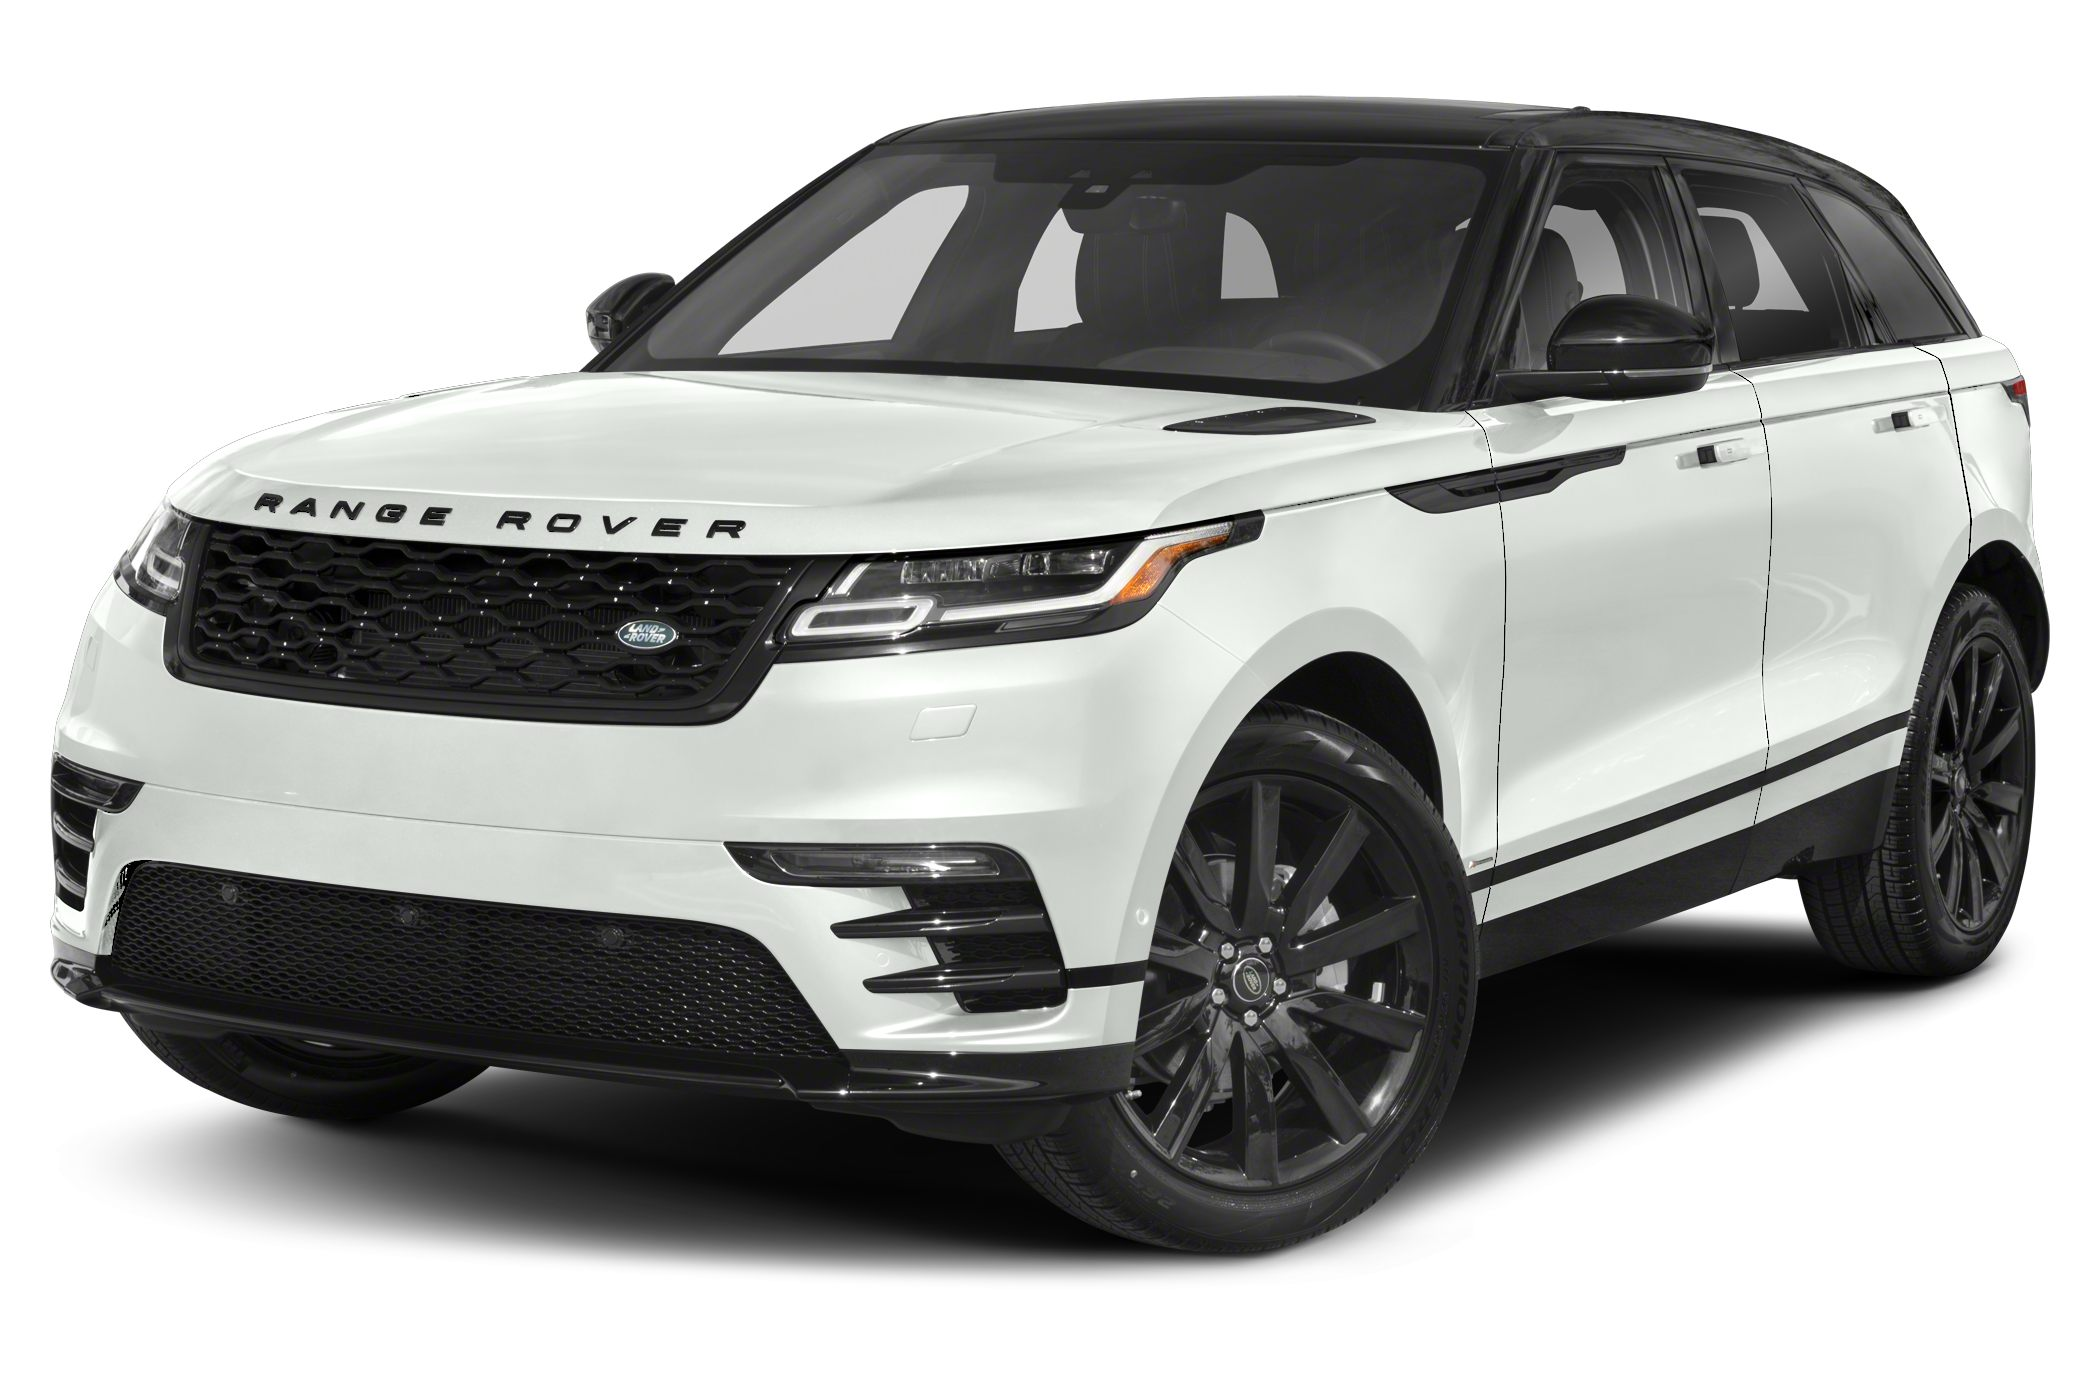 2018 Range Rover Velar Drivers Notes